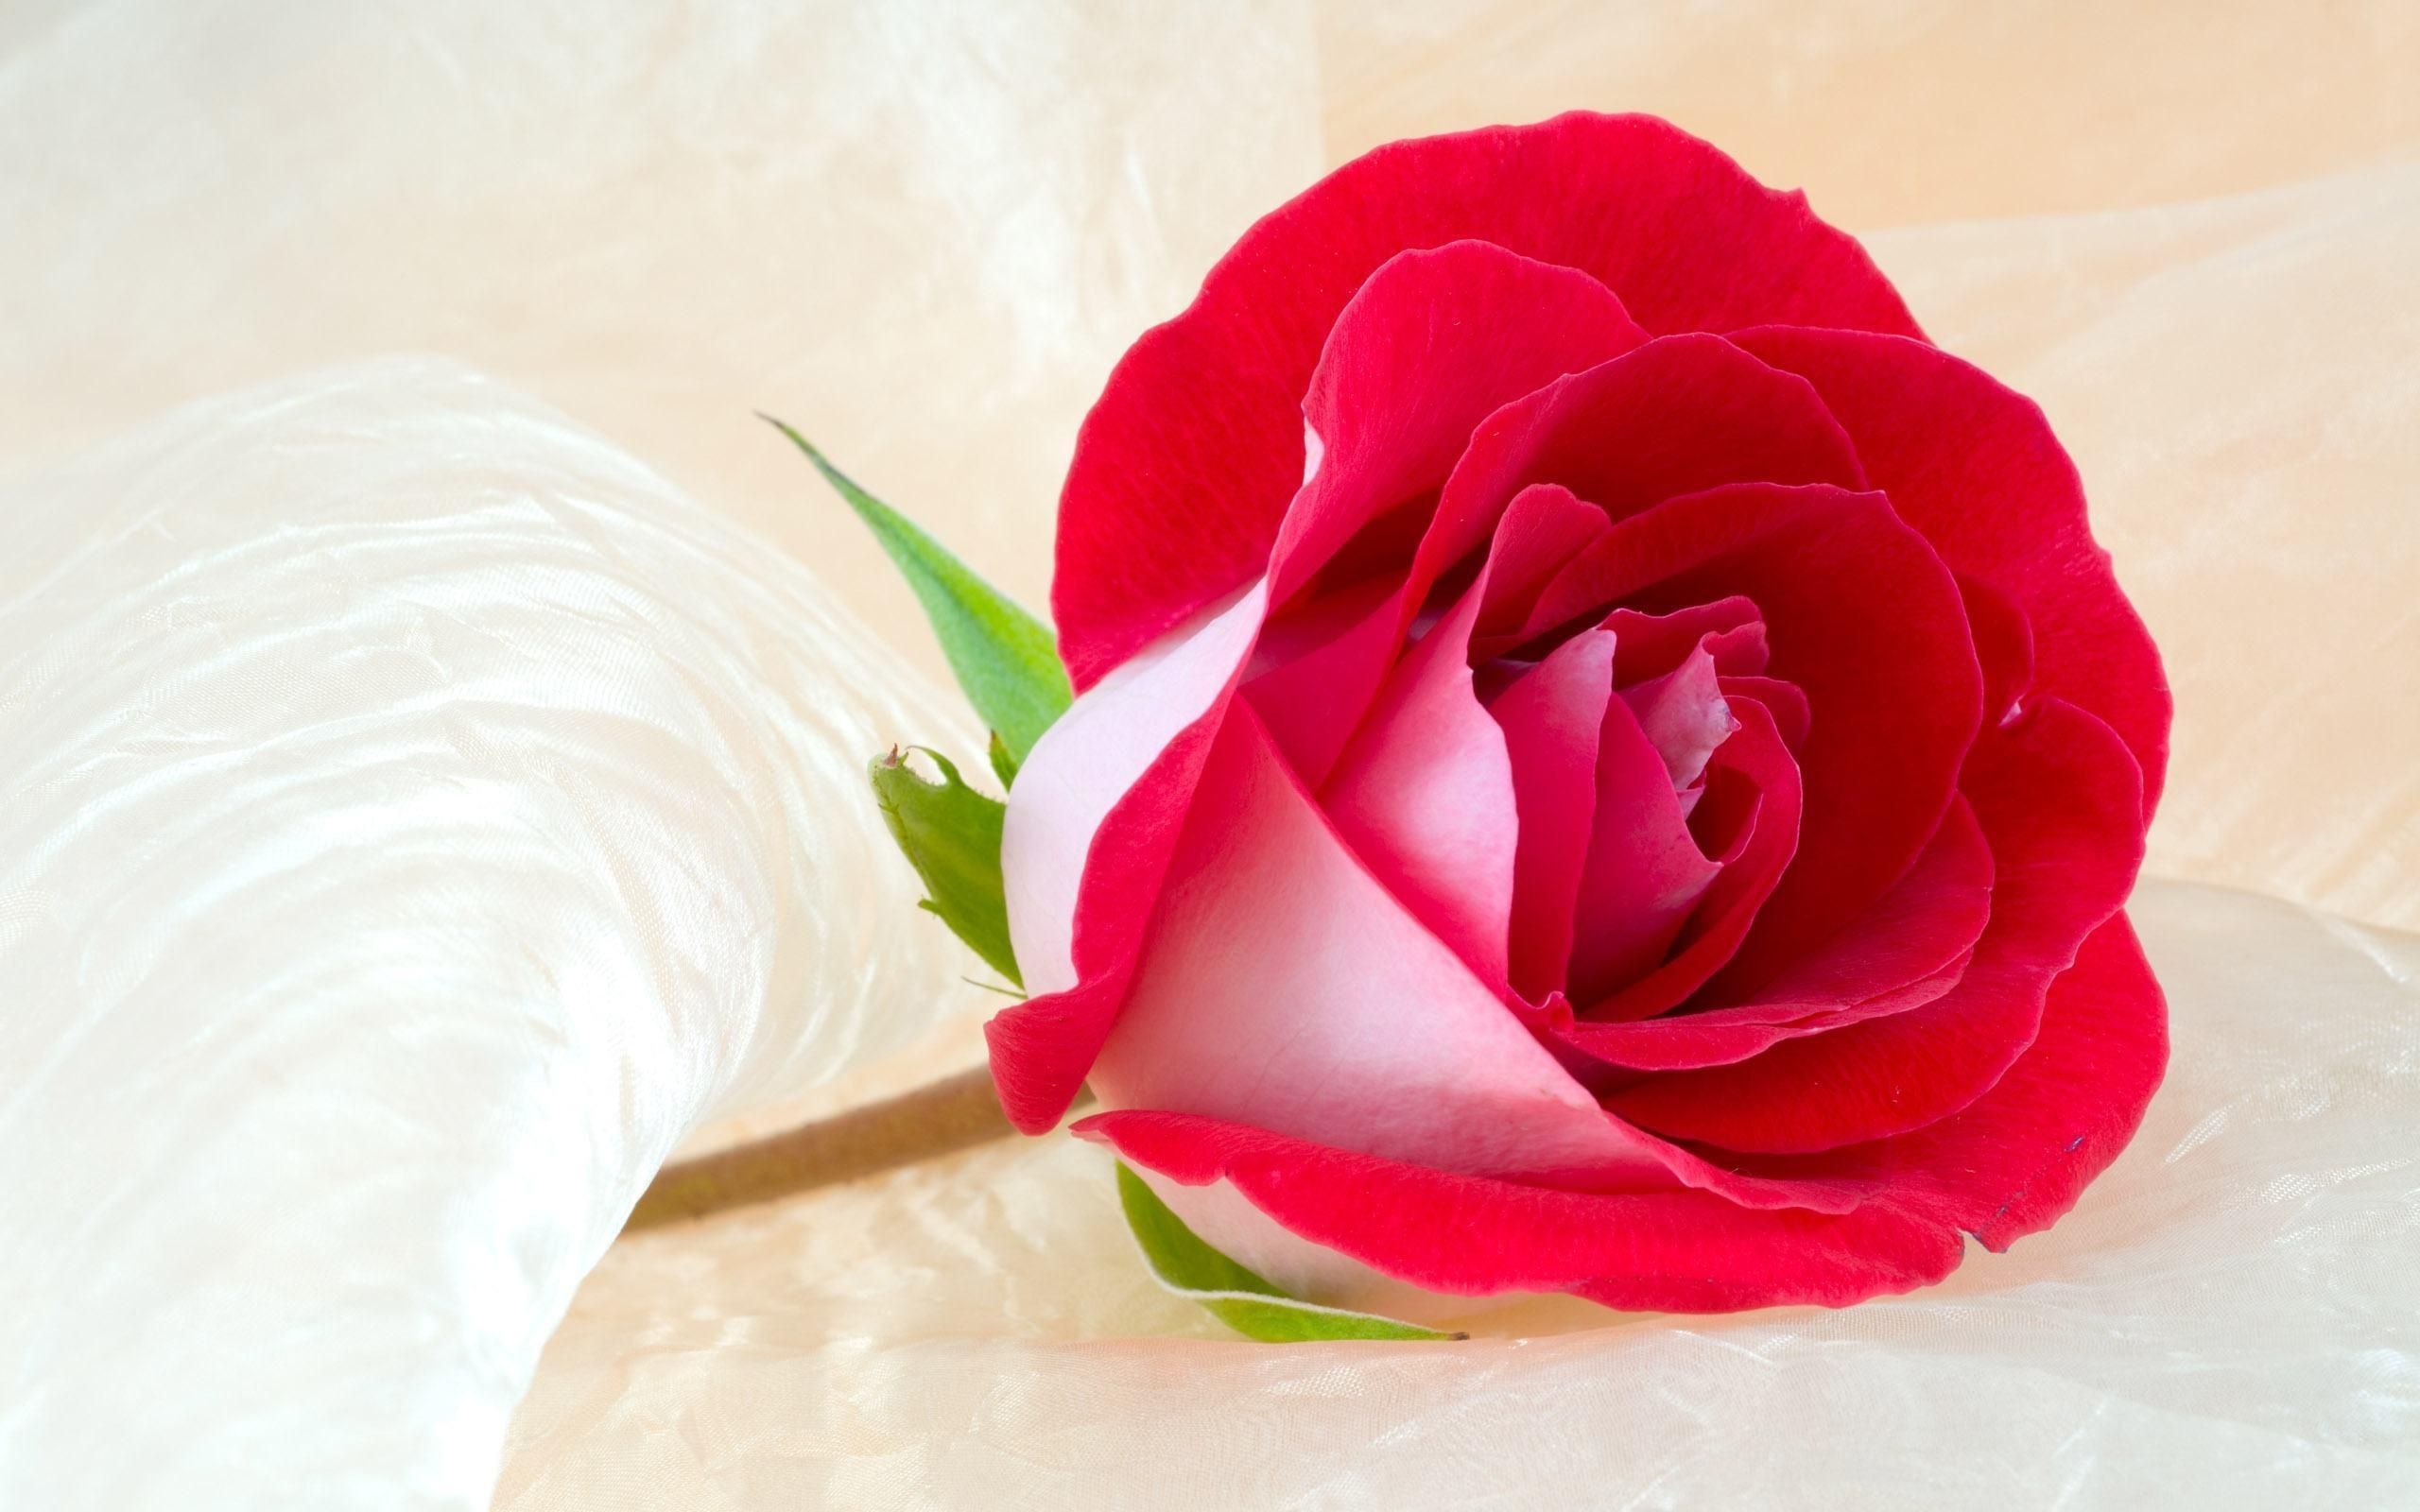 10 Most Popular Roses Wallpapers Free Download FULL HD 1080p For PC Background